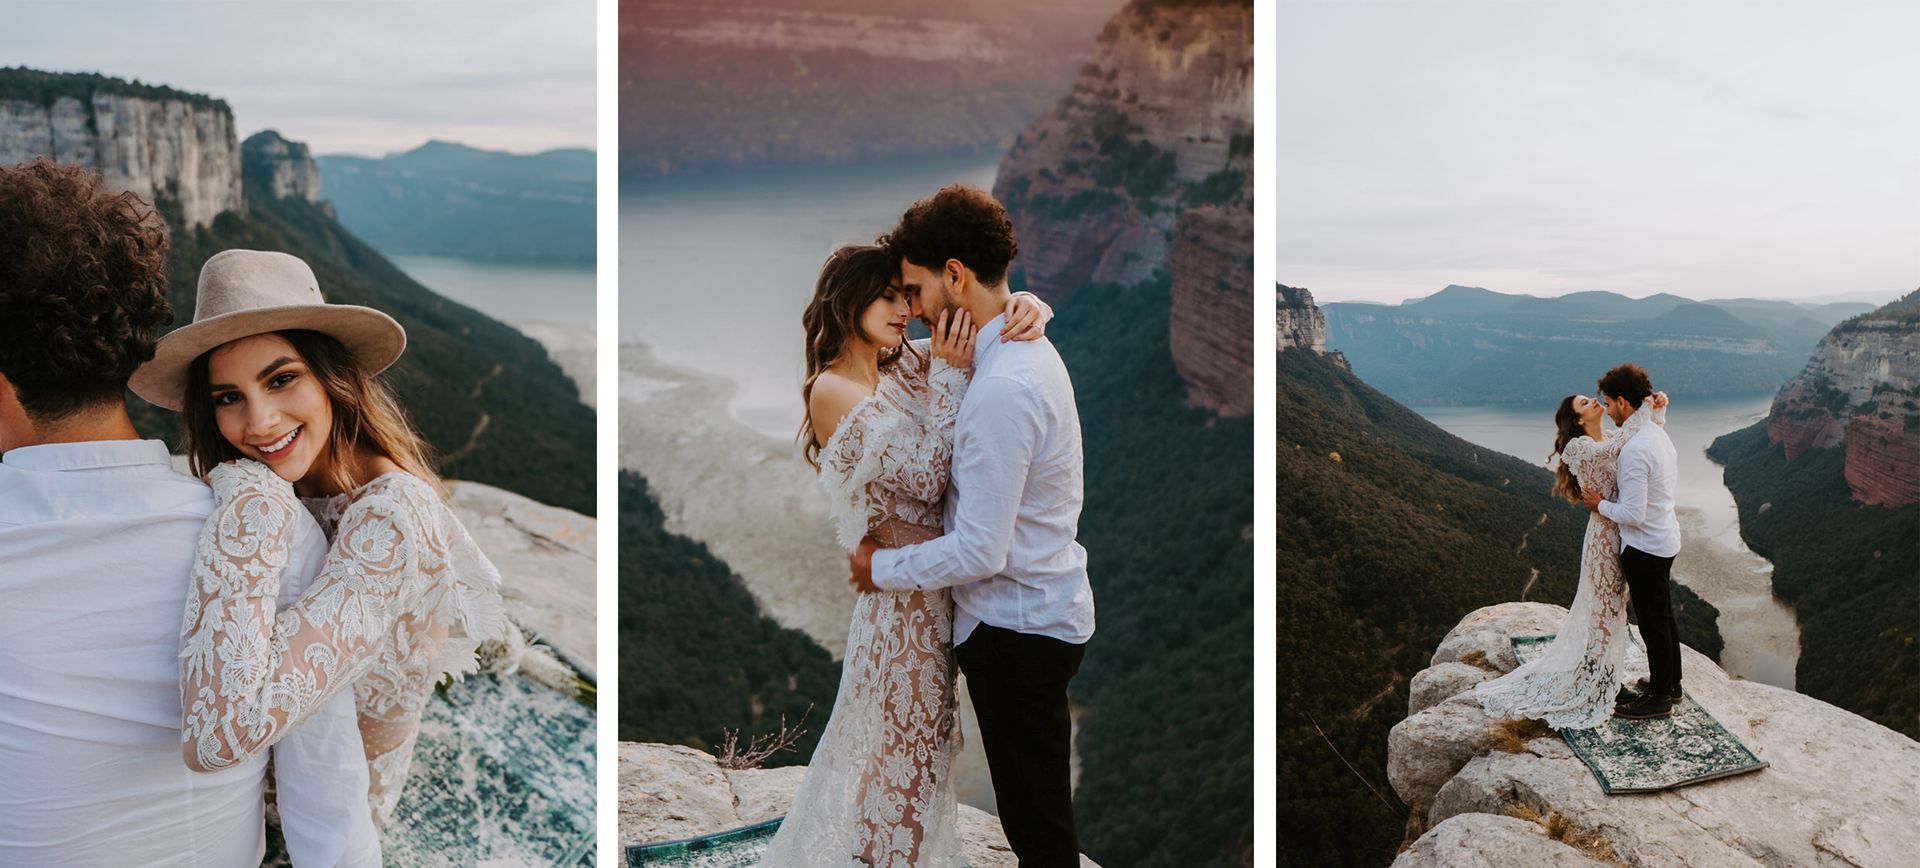 Barcelona Wedding Package: Get Married at Morro D'Labella